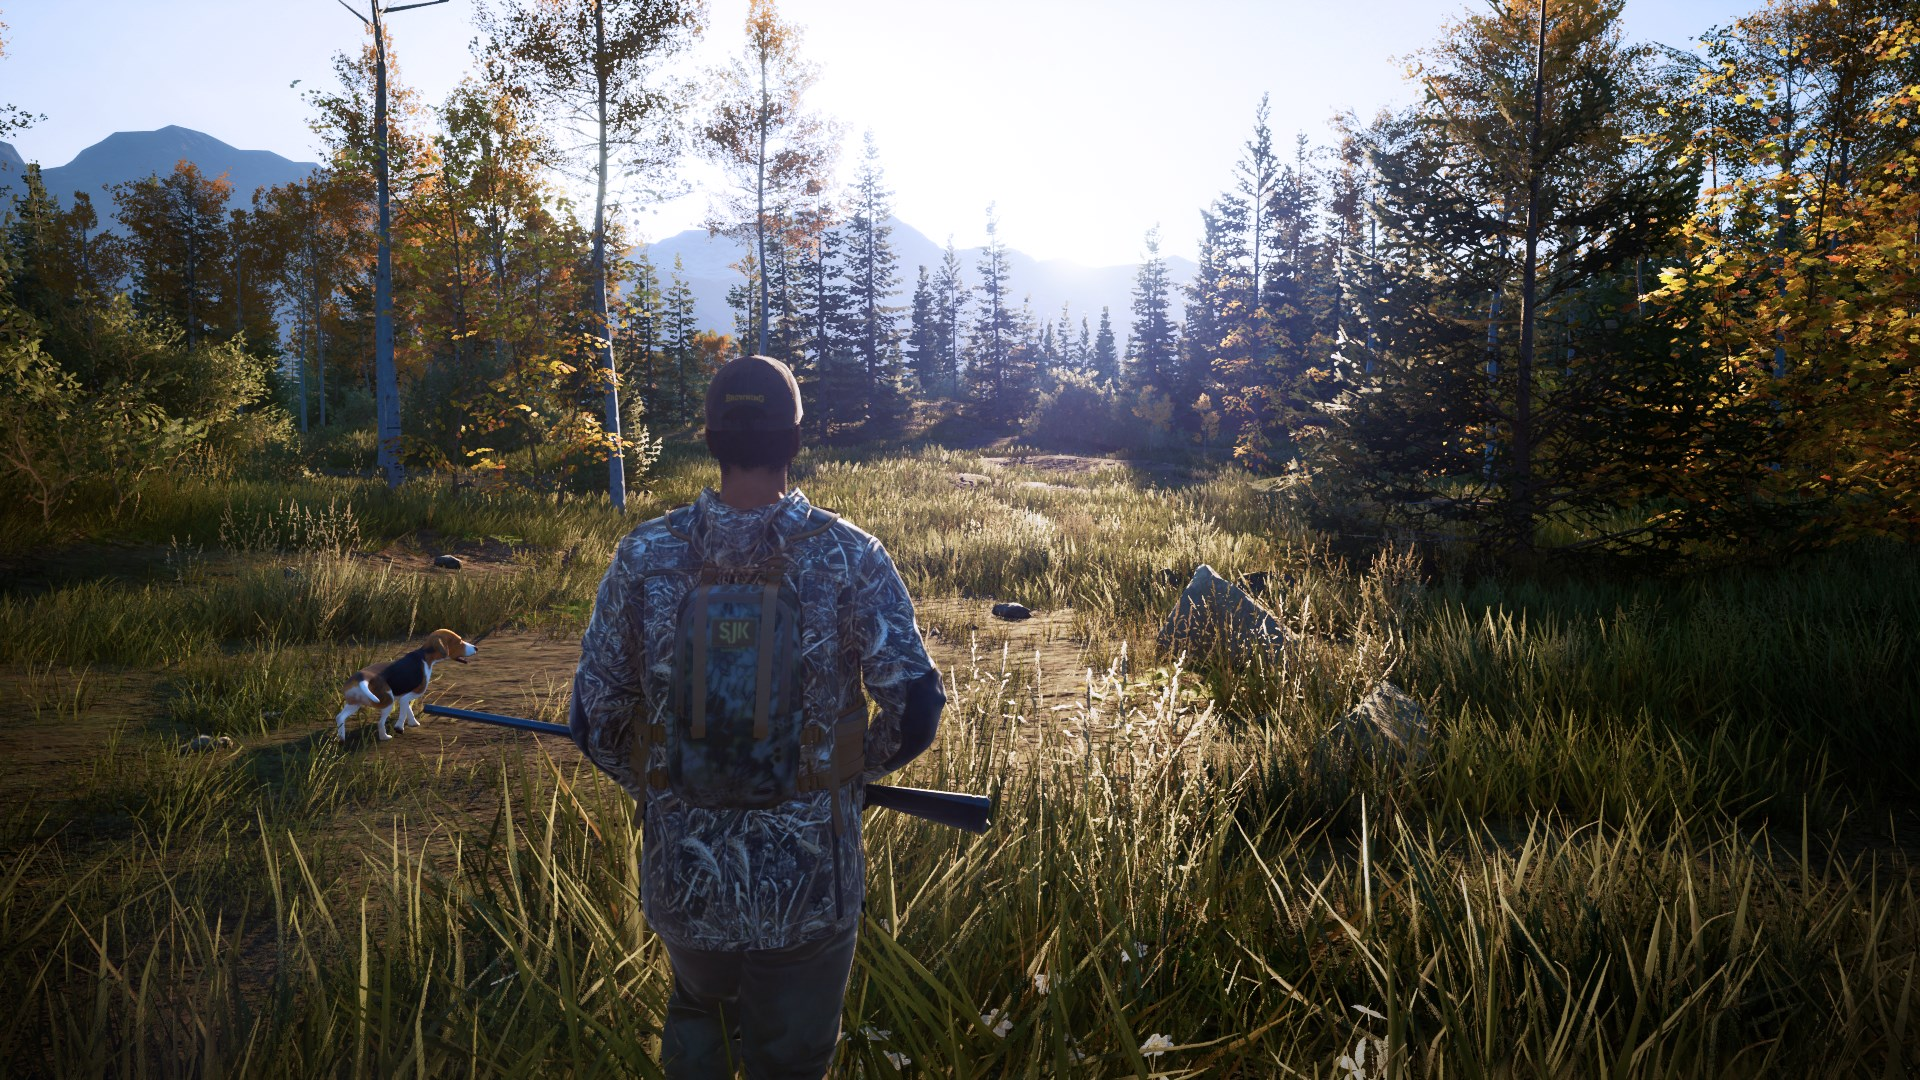 Hunting Simulator 2 – June 30